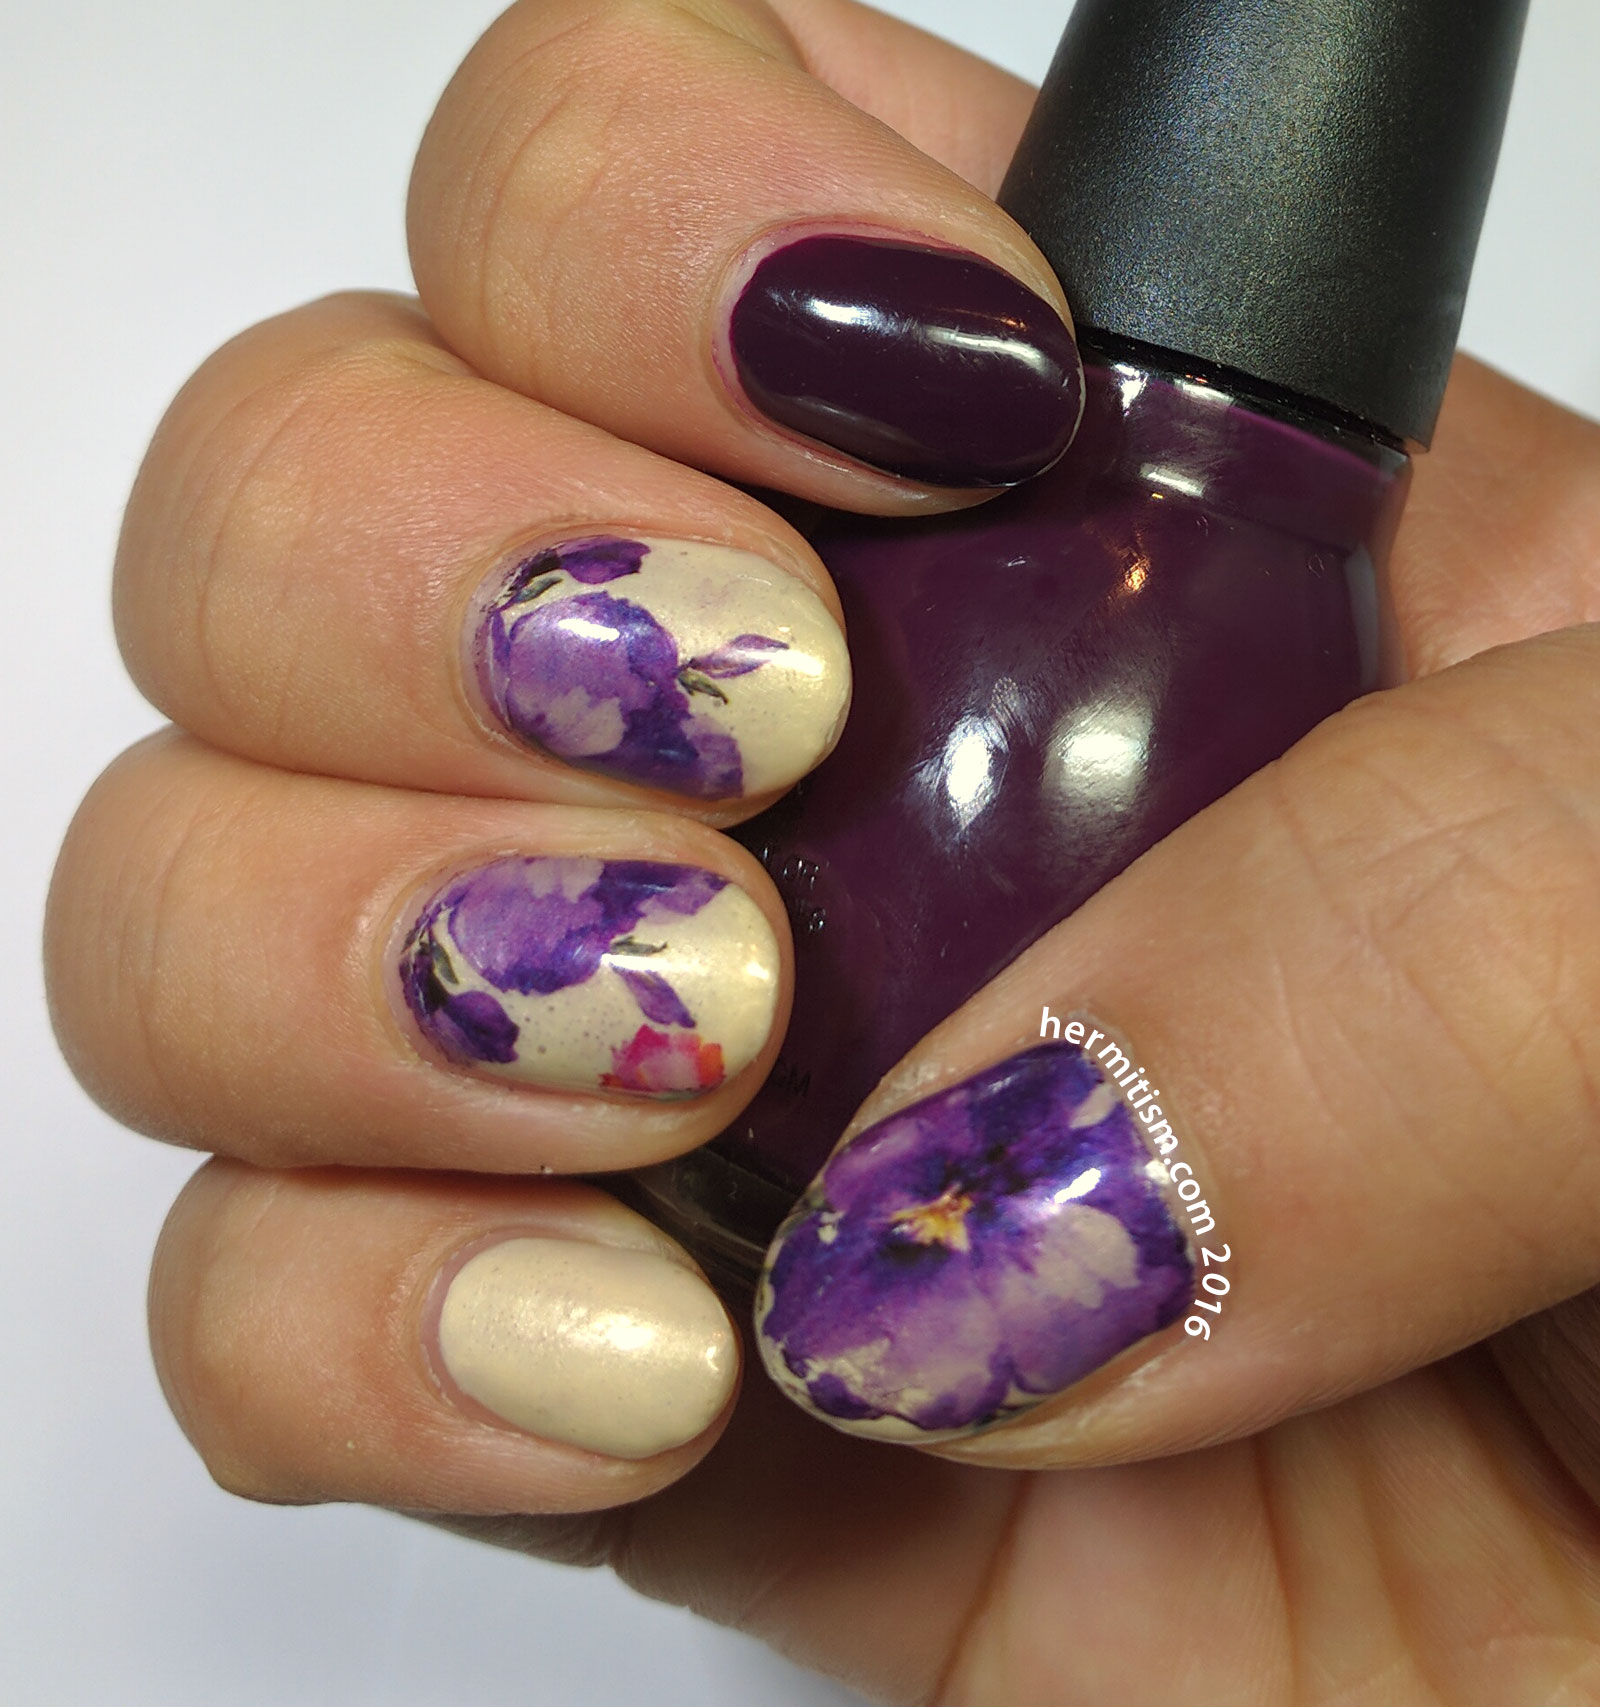 Flower - 31 Day Nail Art Challenge - Hermit Werds